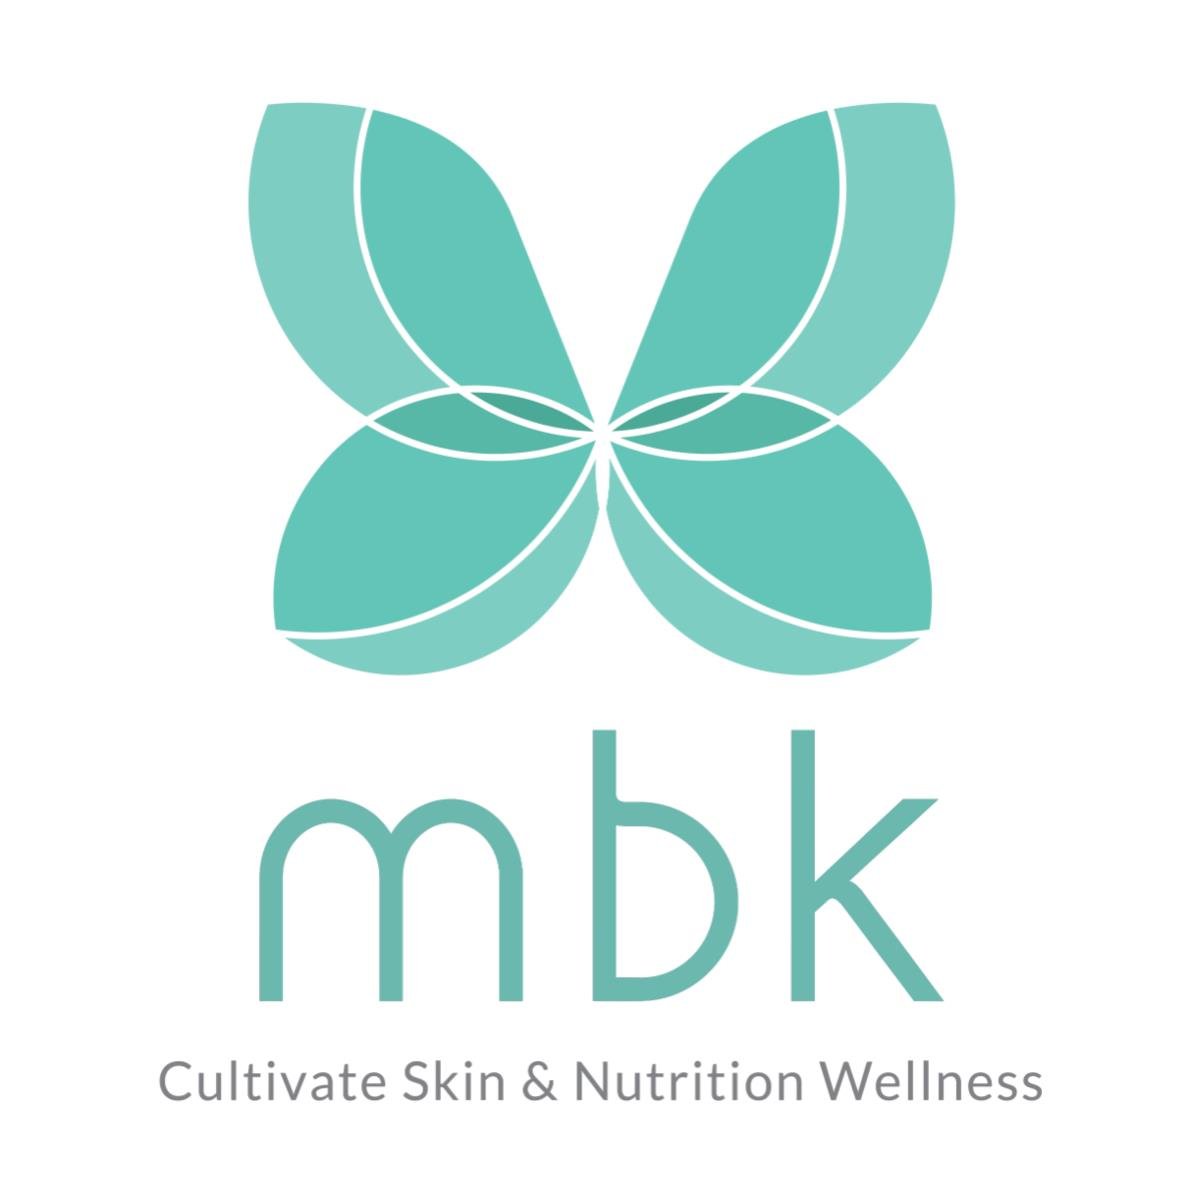 MBK Cultivate Skin & Nutrition Wellness